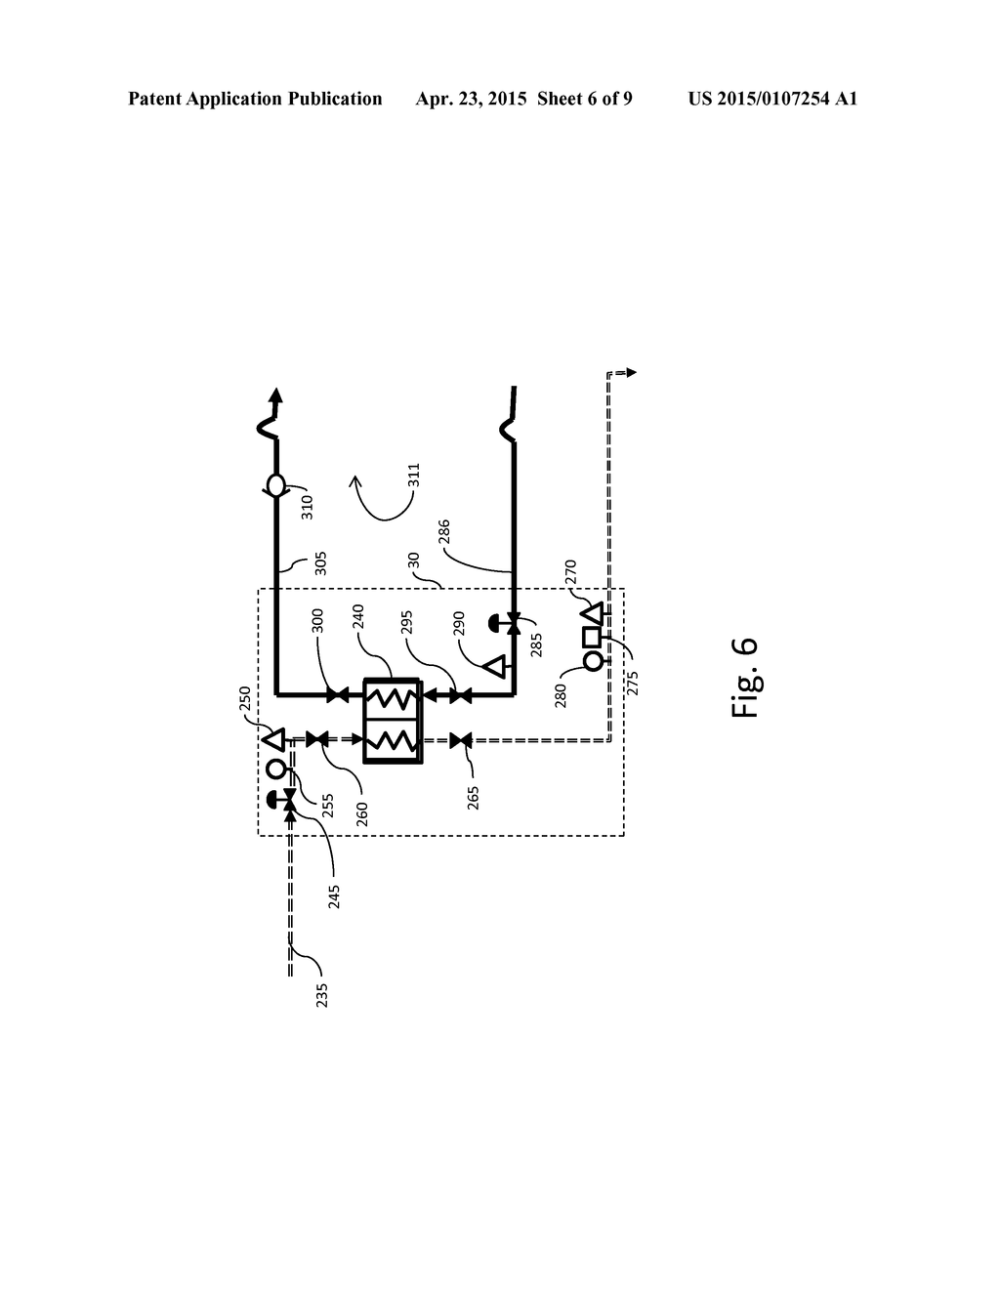 medium resolution of method and system for improving the efficiency of a simple cycle gas turbine system with a closed circuit fuel heating system diagram schematic